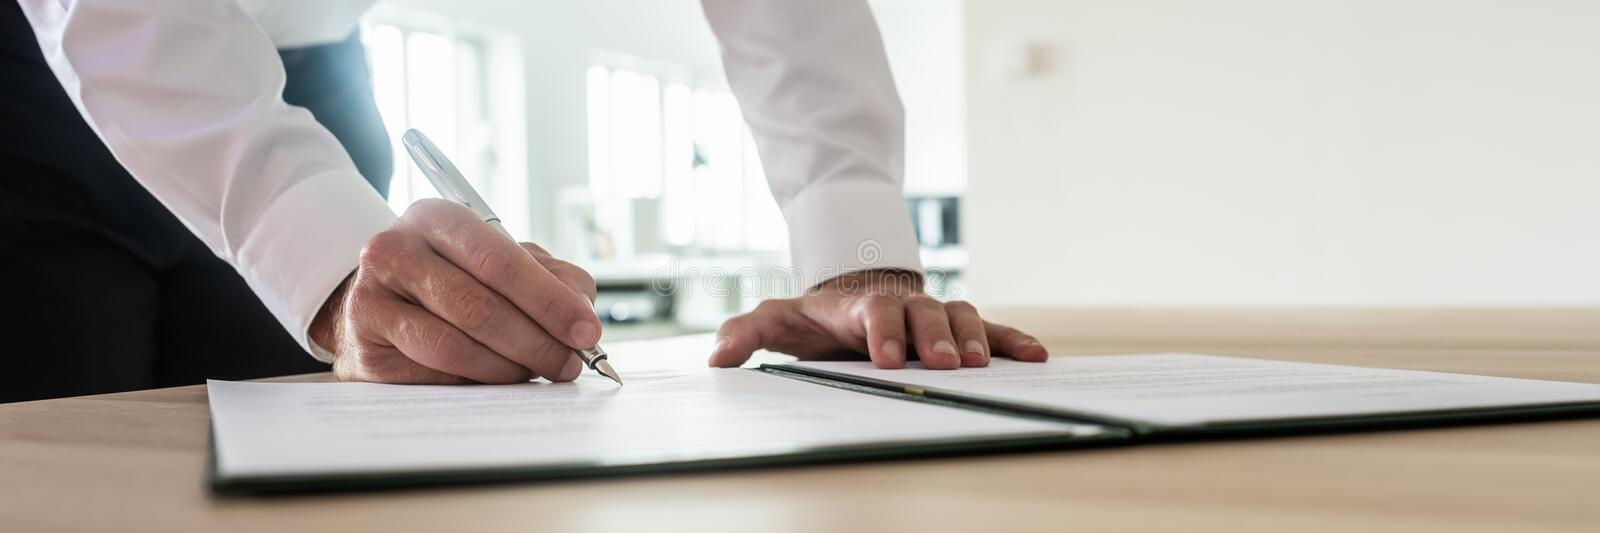 Businessman signing important document. Panoramic image of businessman signing important document or contract while standing at his office desk royalty free stock image